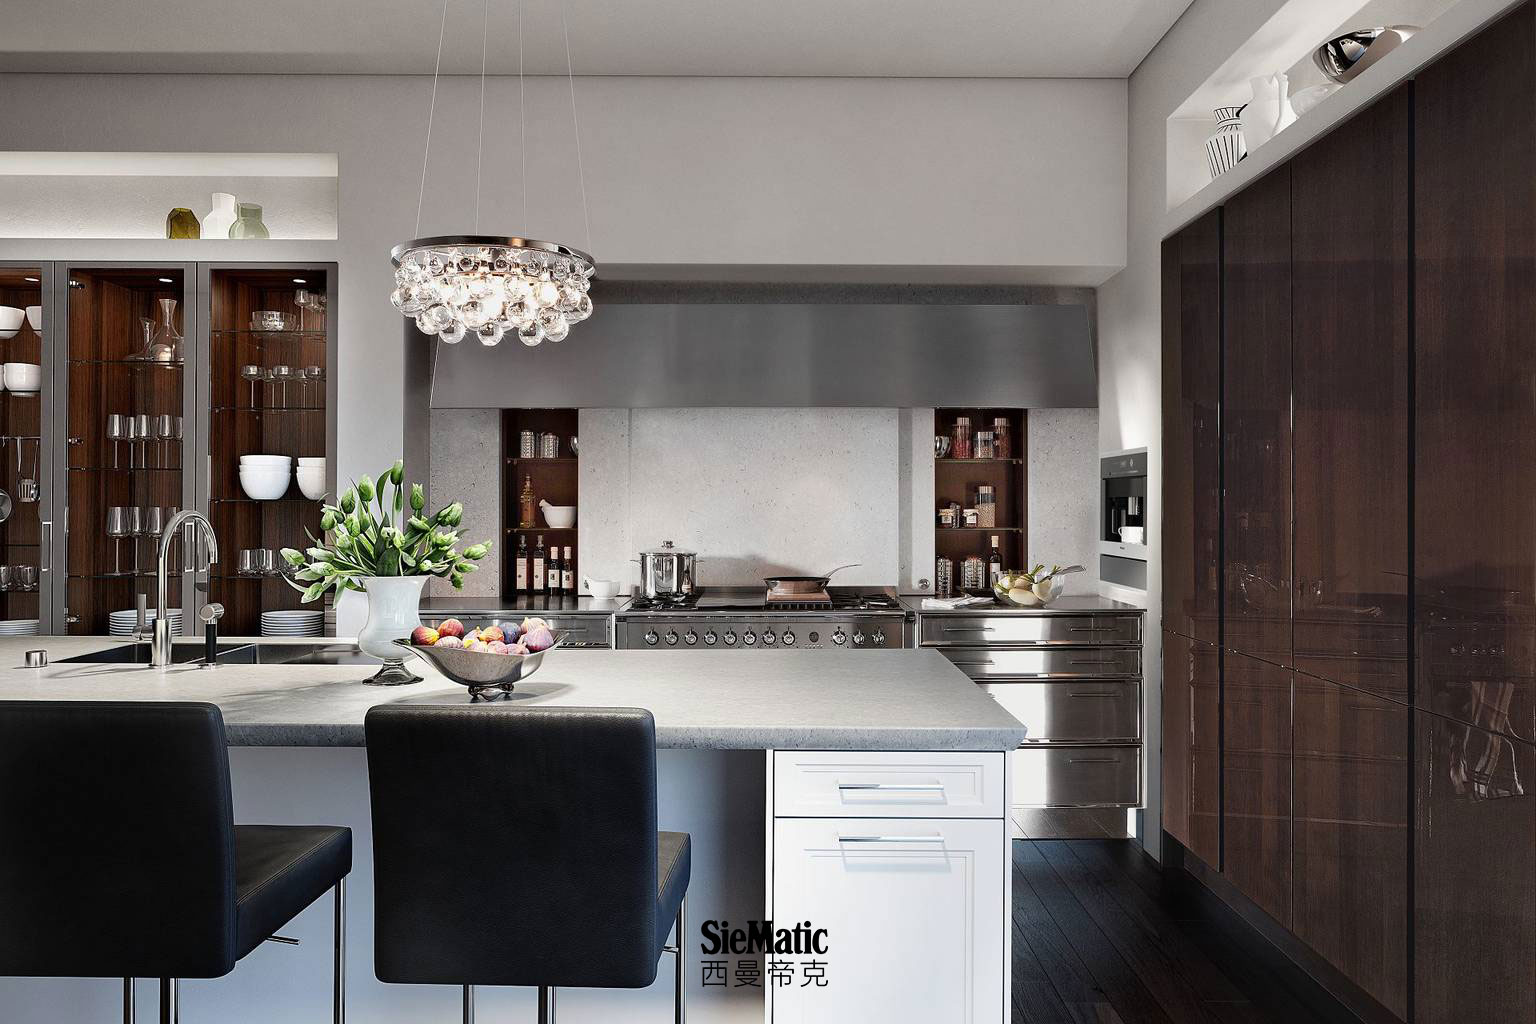 Timelessly elegant kitchen from the Classic style collection with SieMatic StoneDesign countertop and elliptical edging